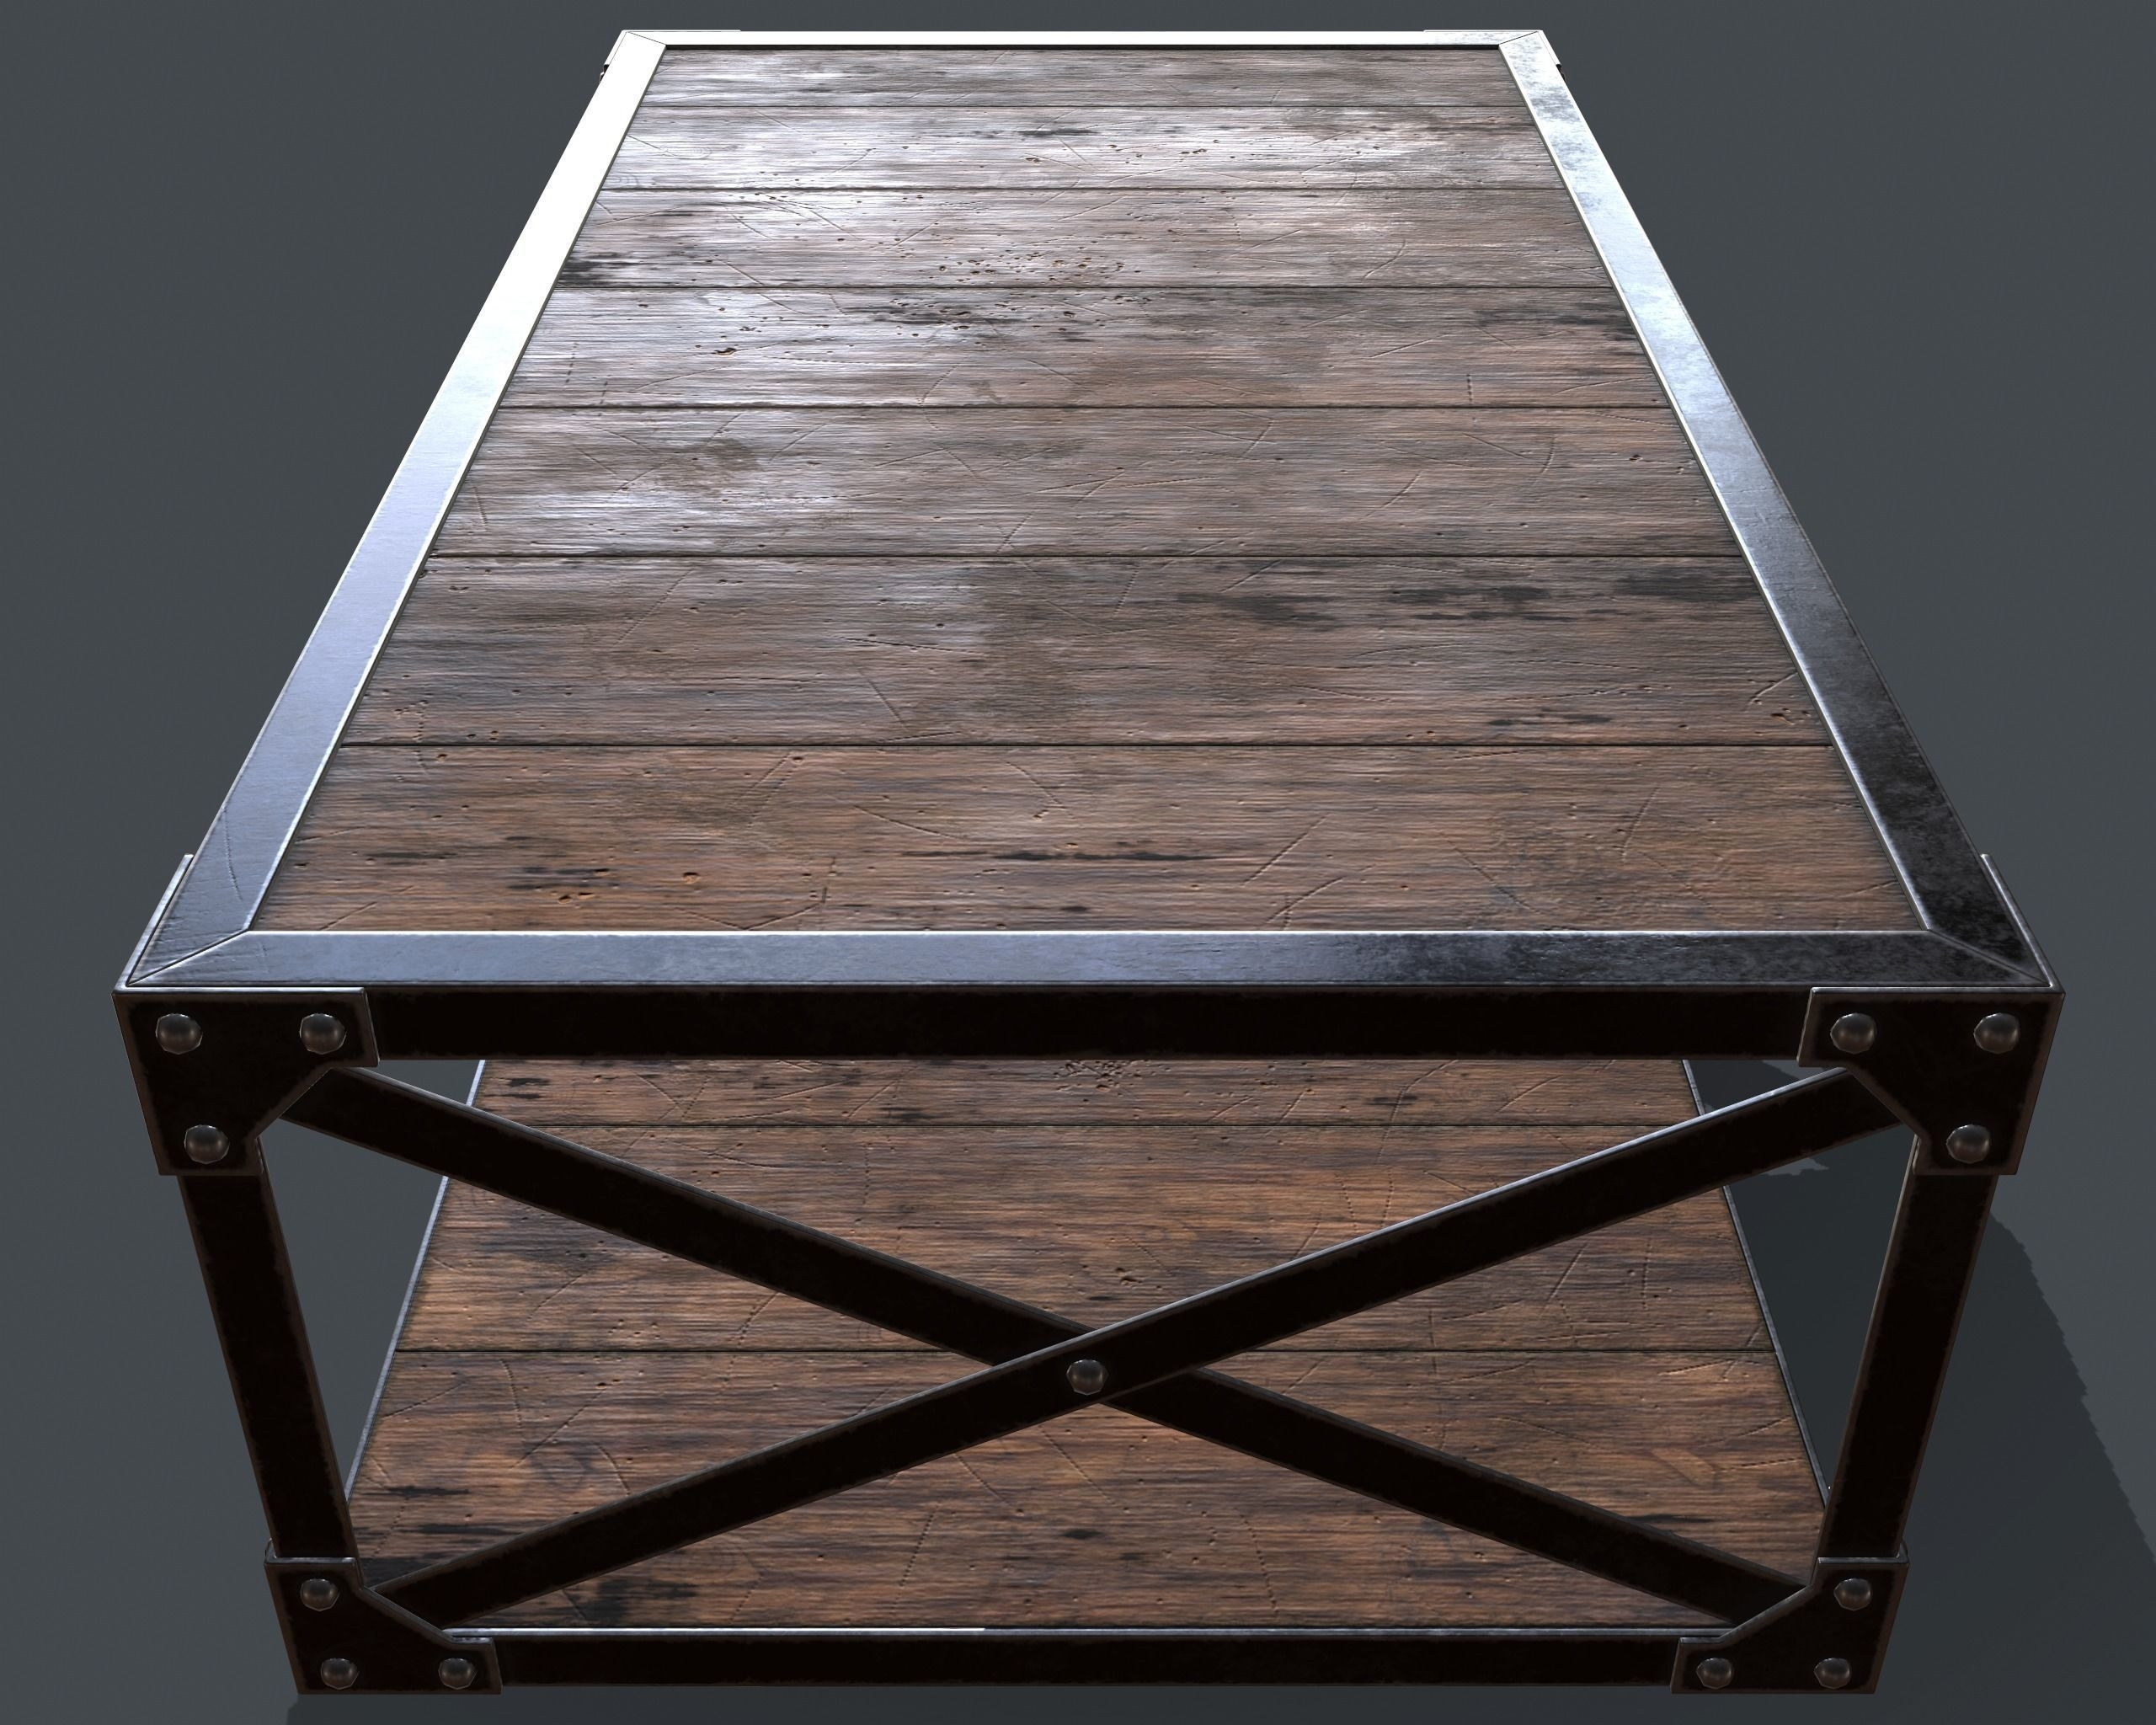 3D Model Industrial Style Coffee Table Vr / Ar / Low Poly Obj Fbx Regarding